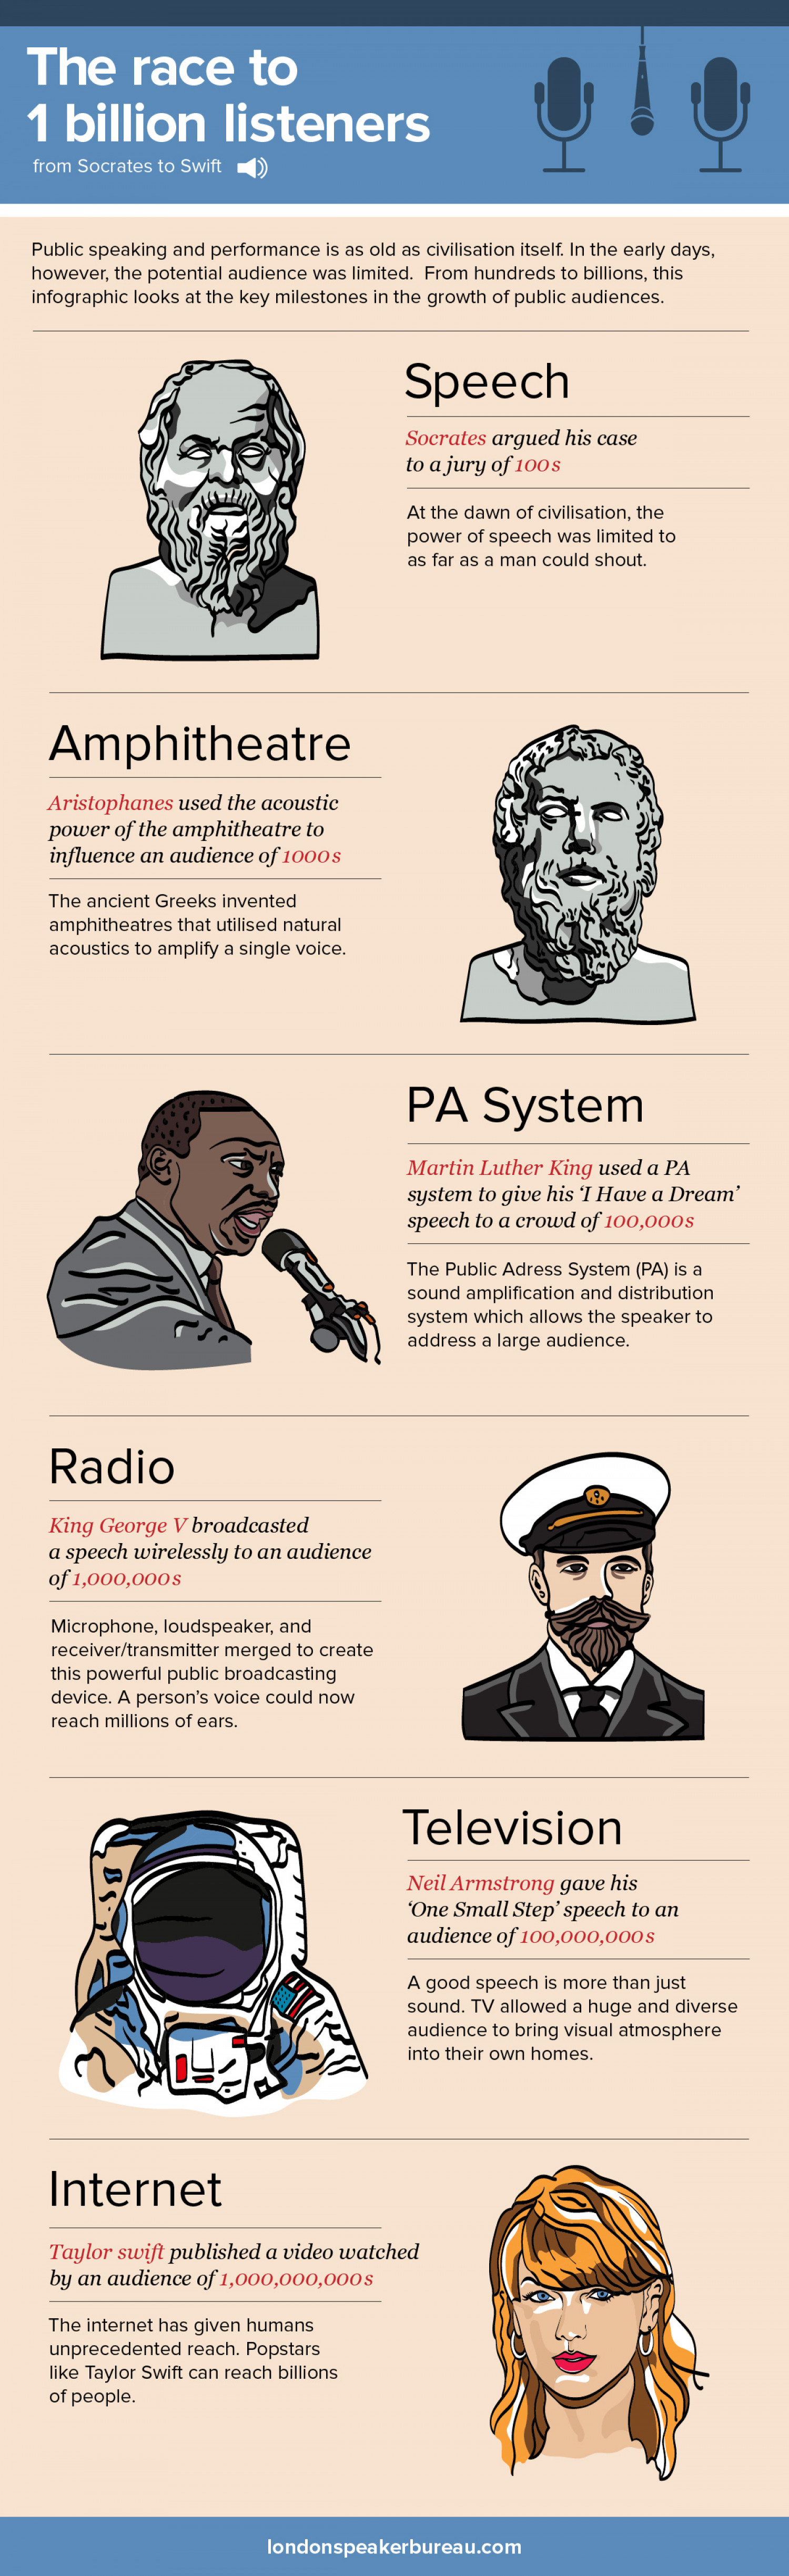 The Race To 1 Billion Listeners Infographic